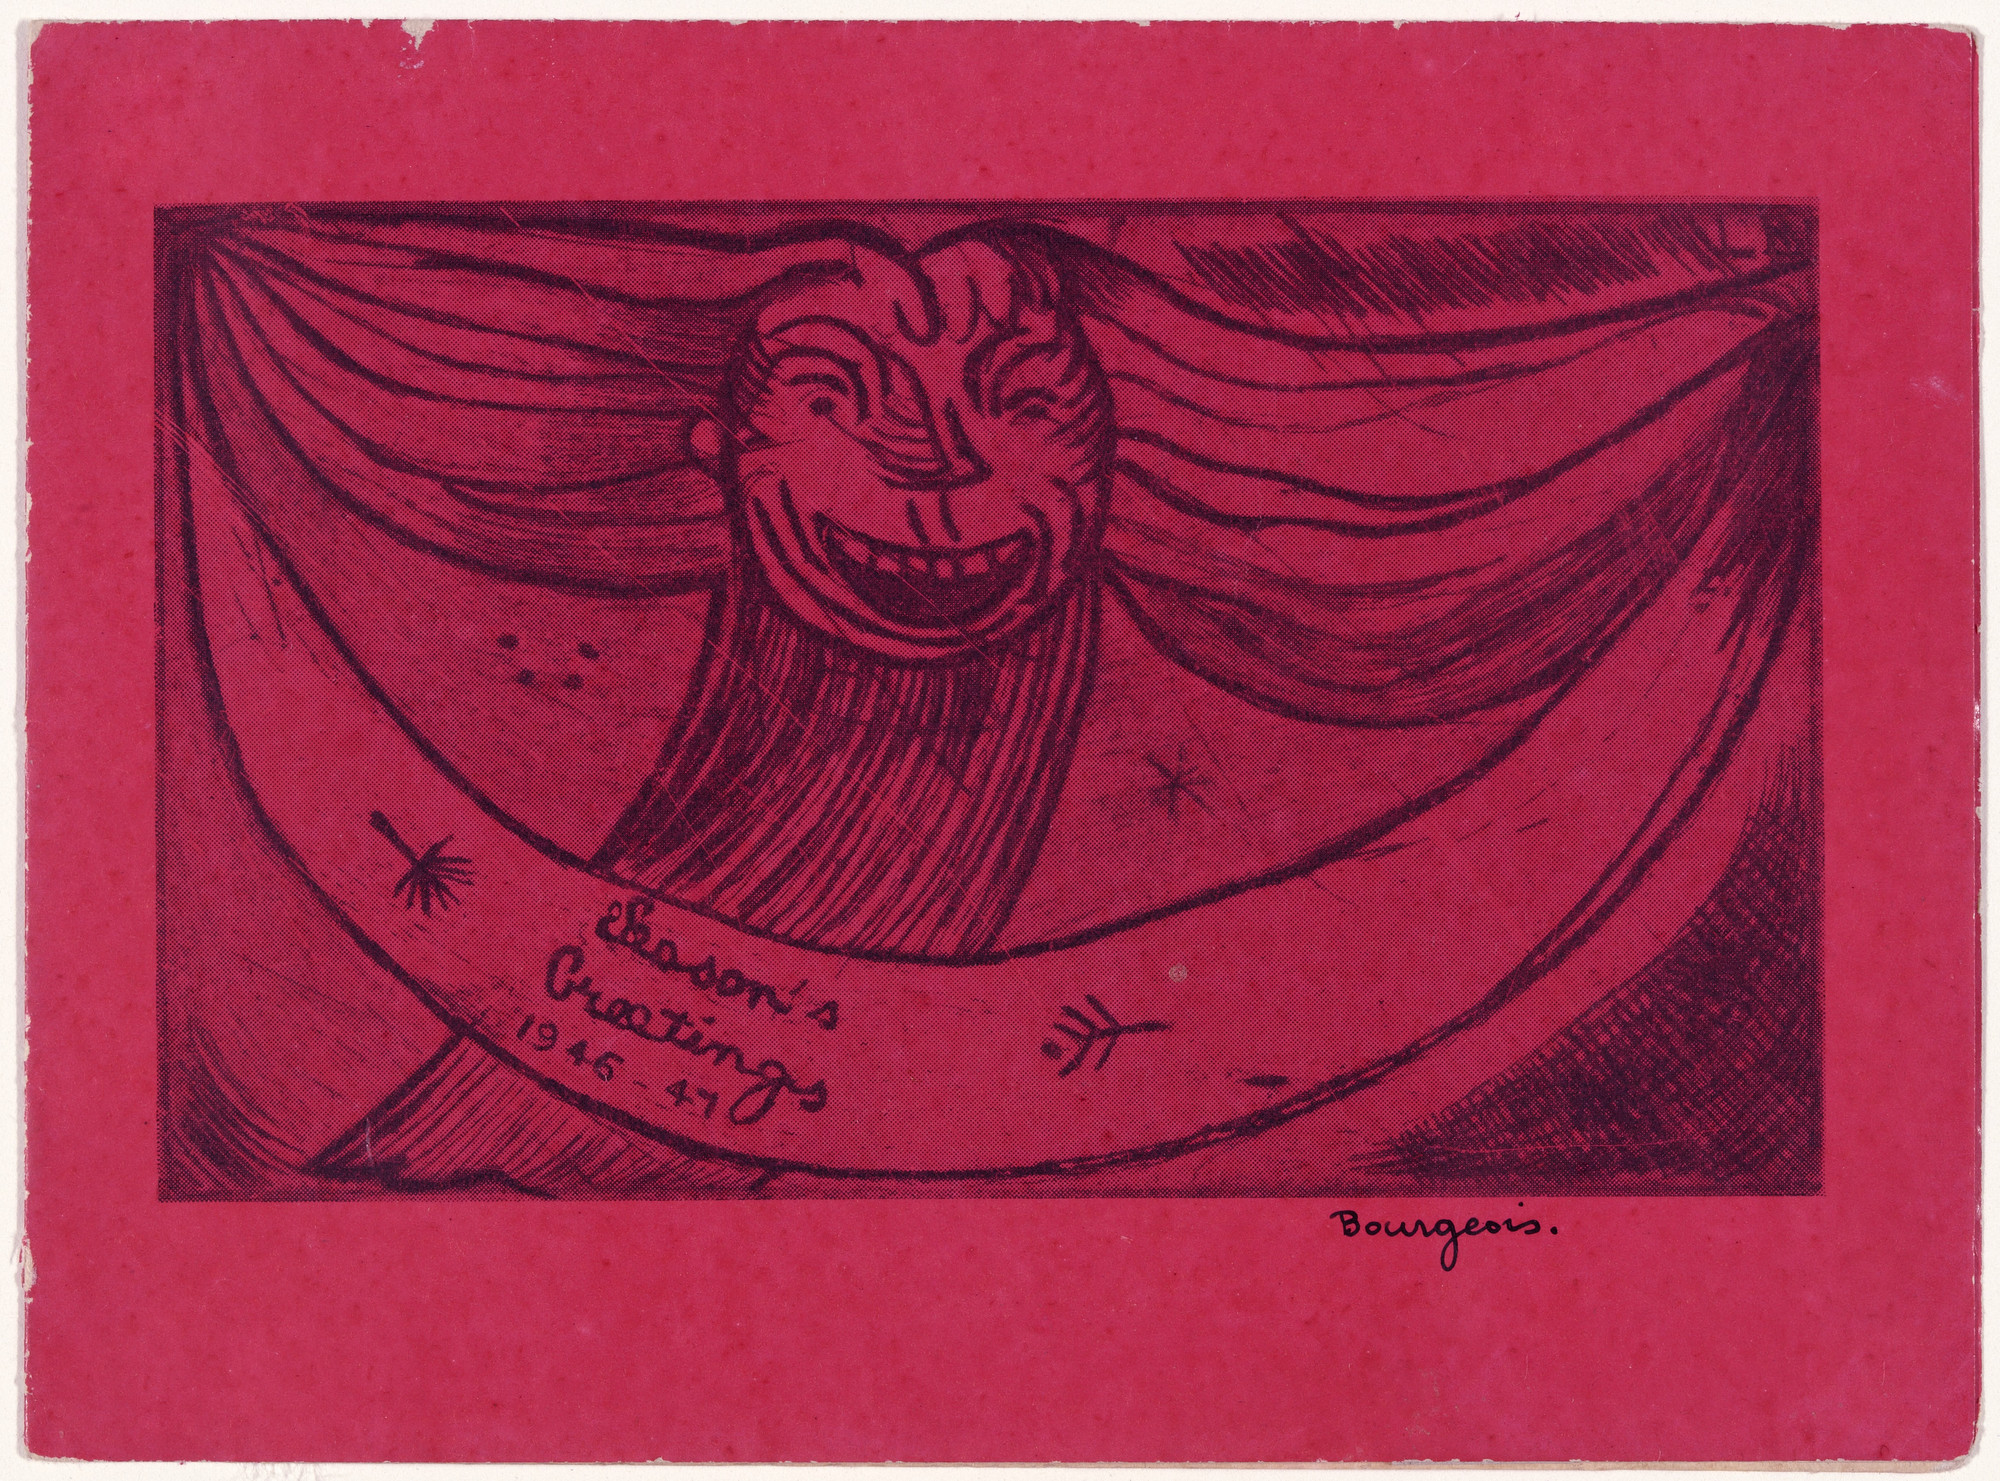 Louise Bourgeois. Greetings: Laughing Monster. 1946